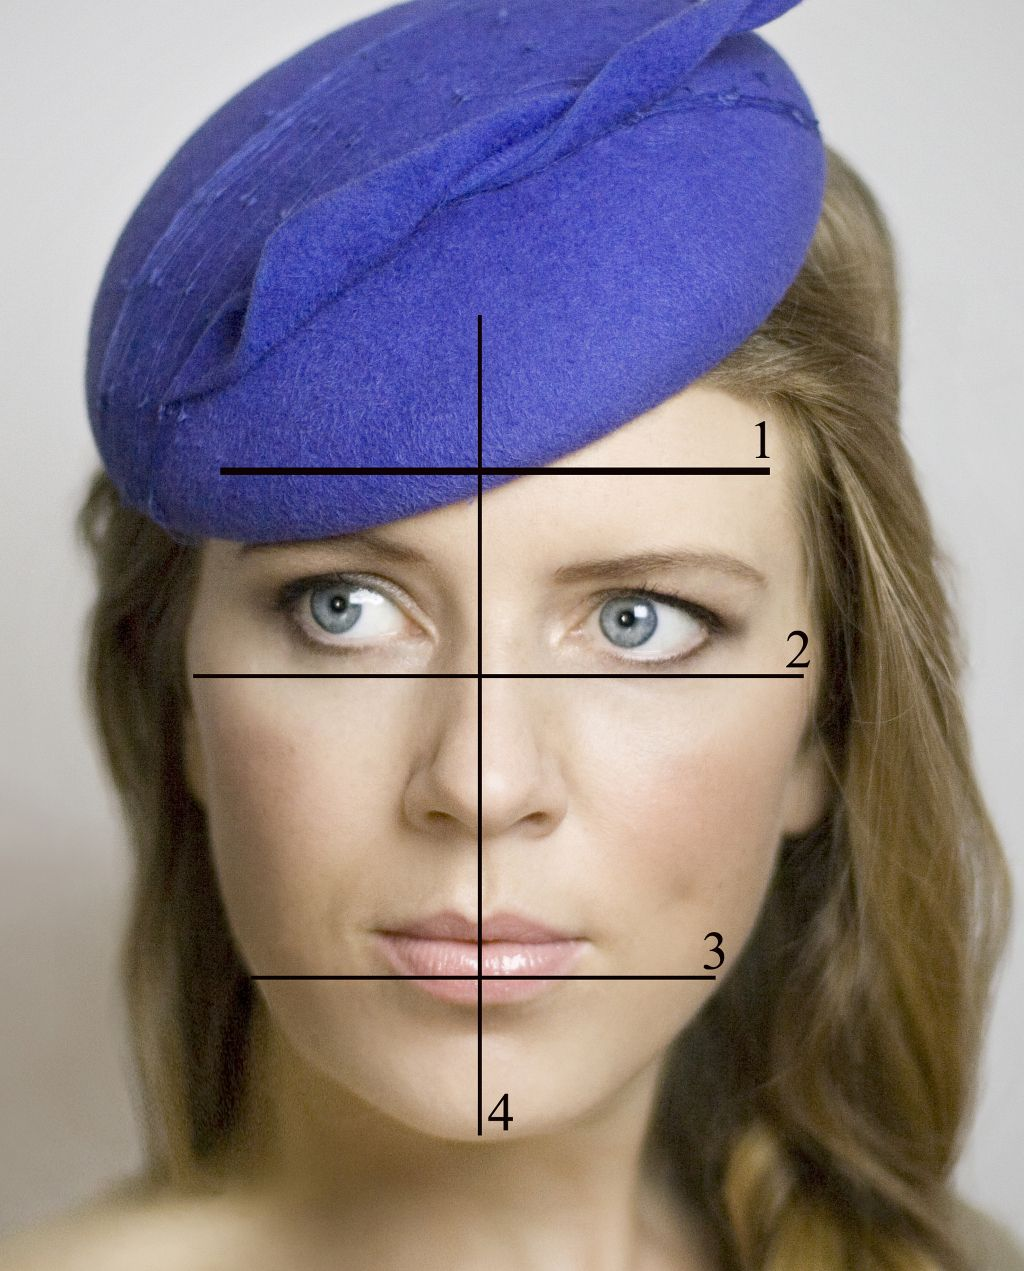 c812398e480bd Choosing the Right Hat For Your Face - Maggie Mowbray Millinery ...